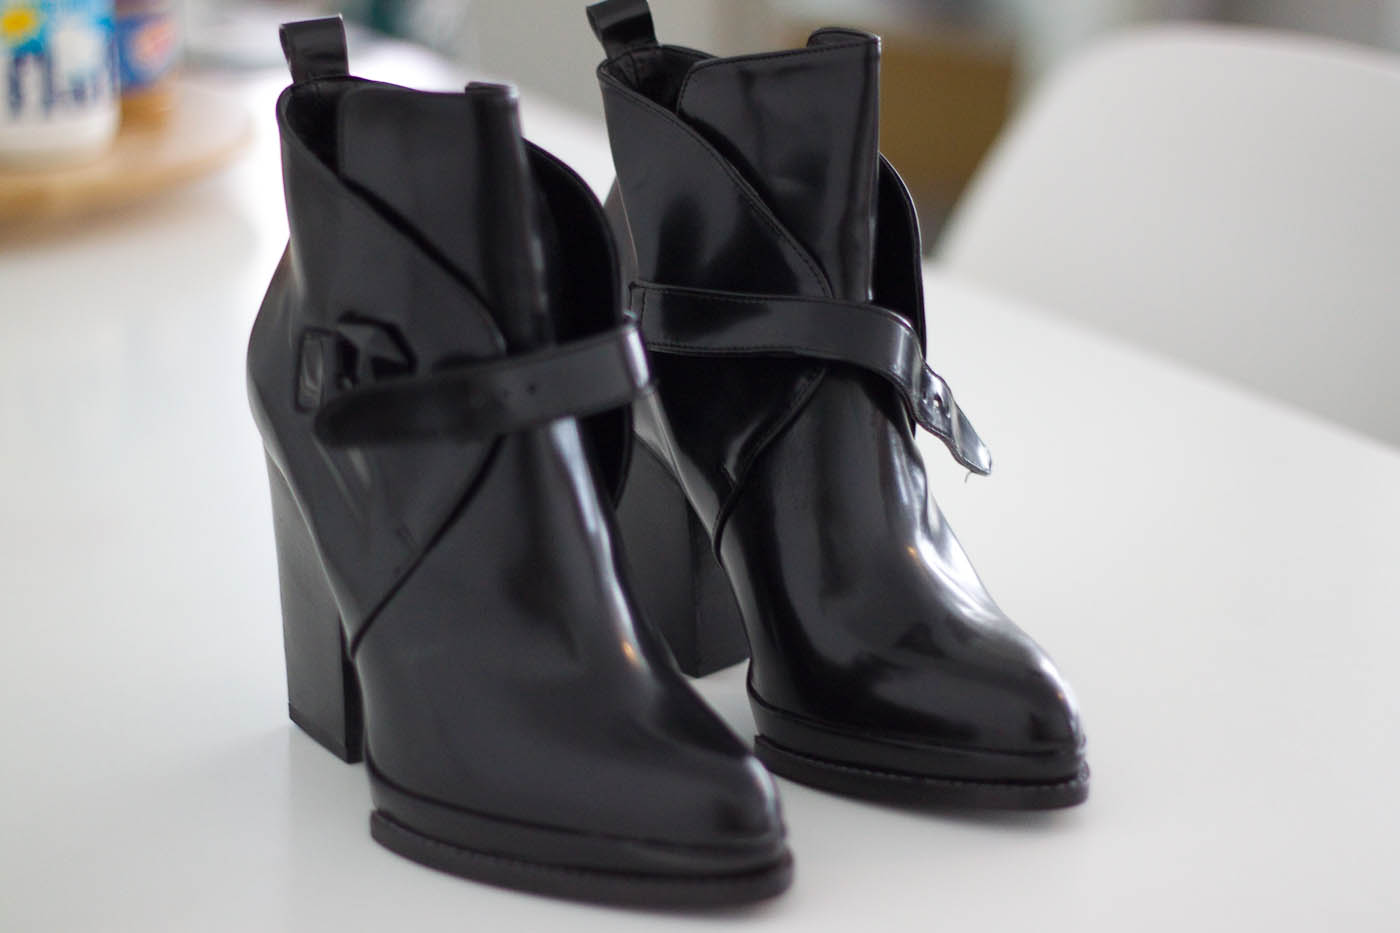 The perfect pair of boots for fall — The FashionCloud